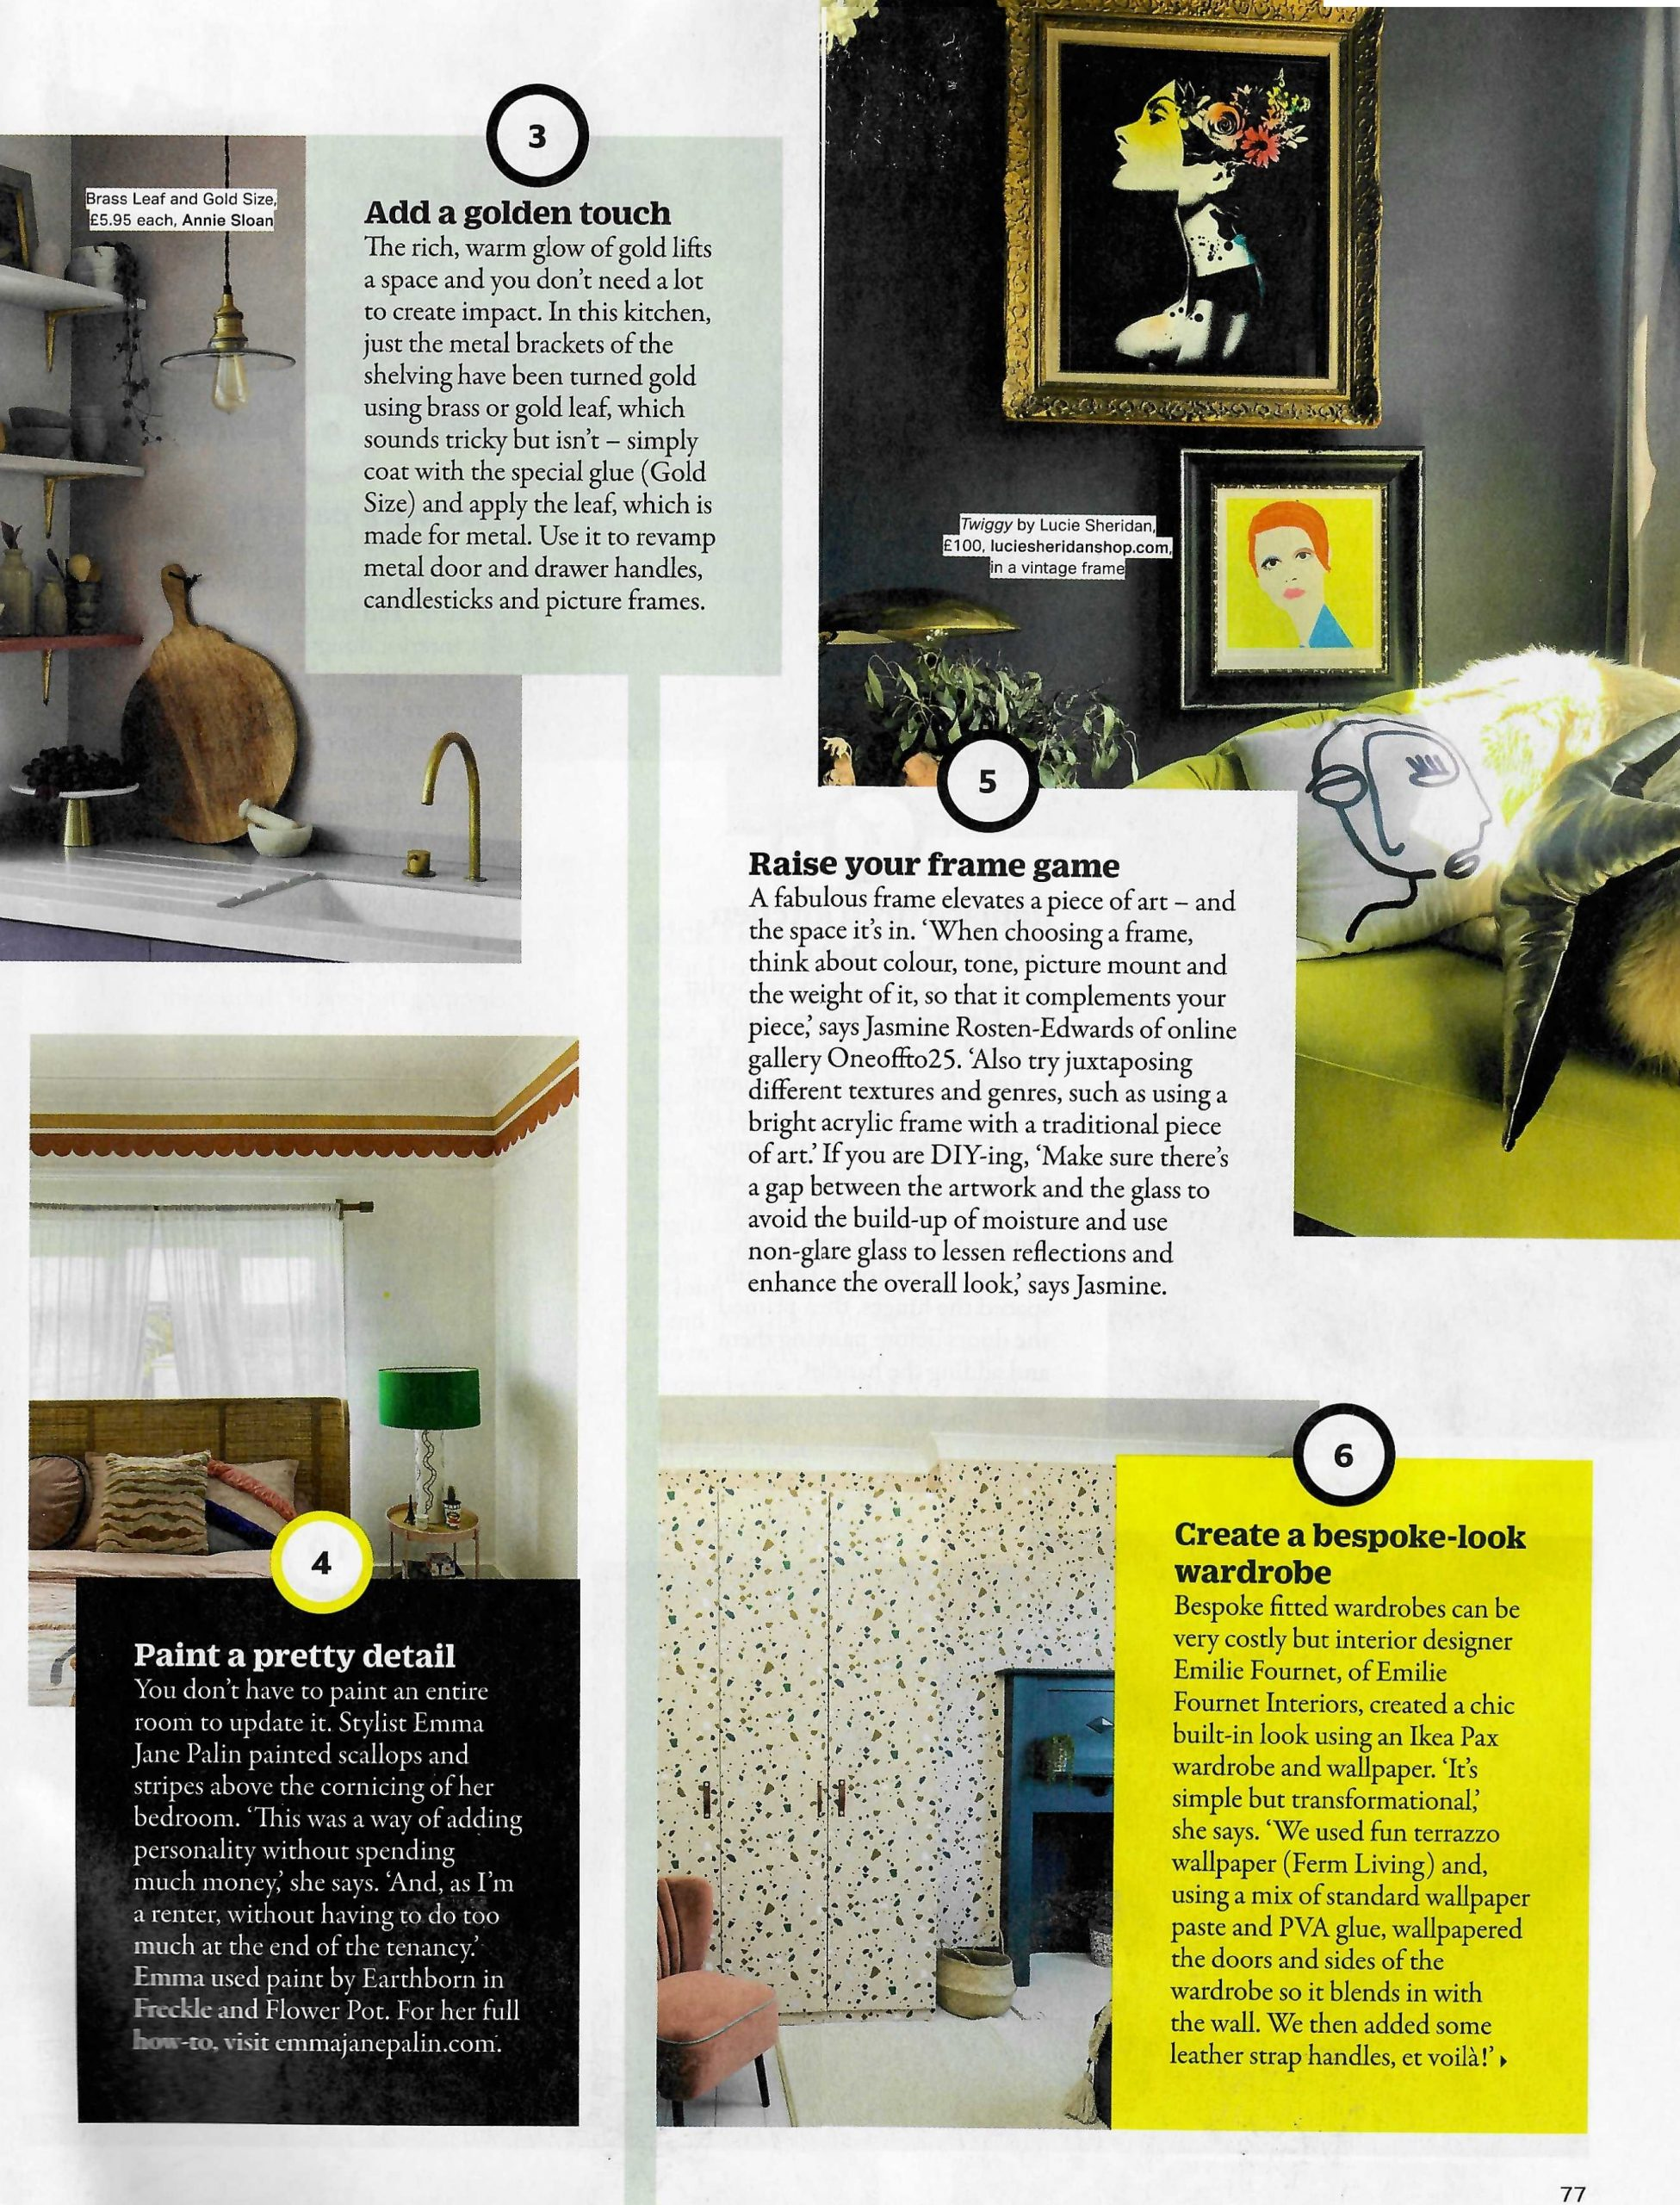 Add a golden touch to your home with Annie Sloan's brass leaf, says Grazia